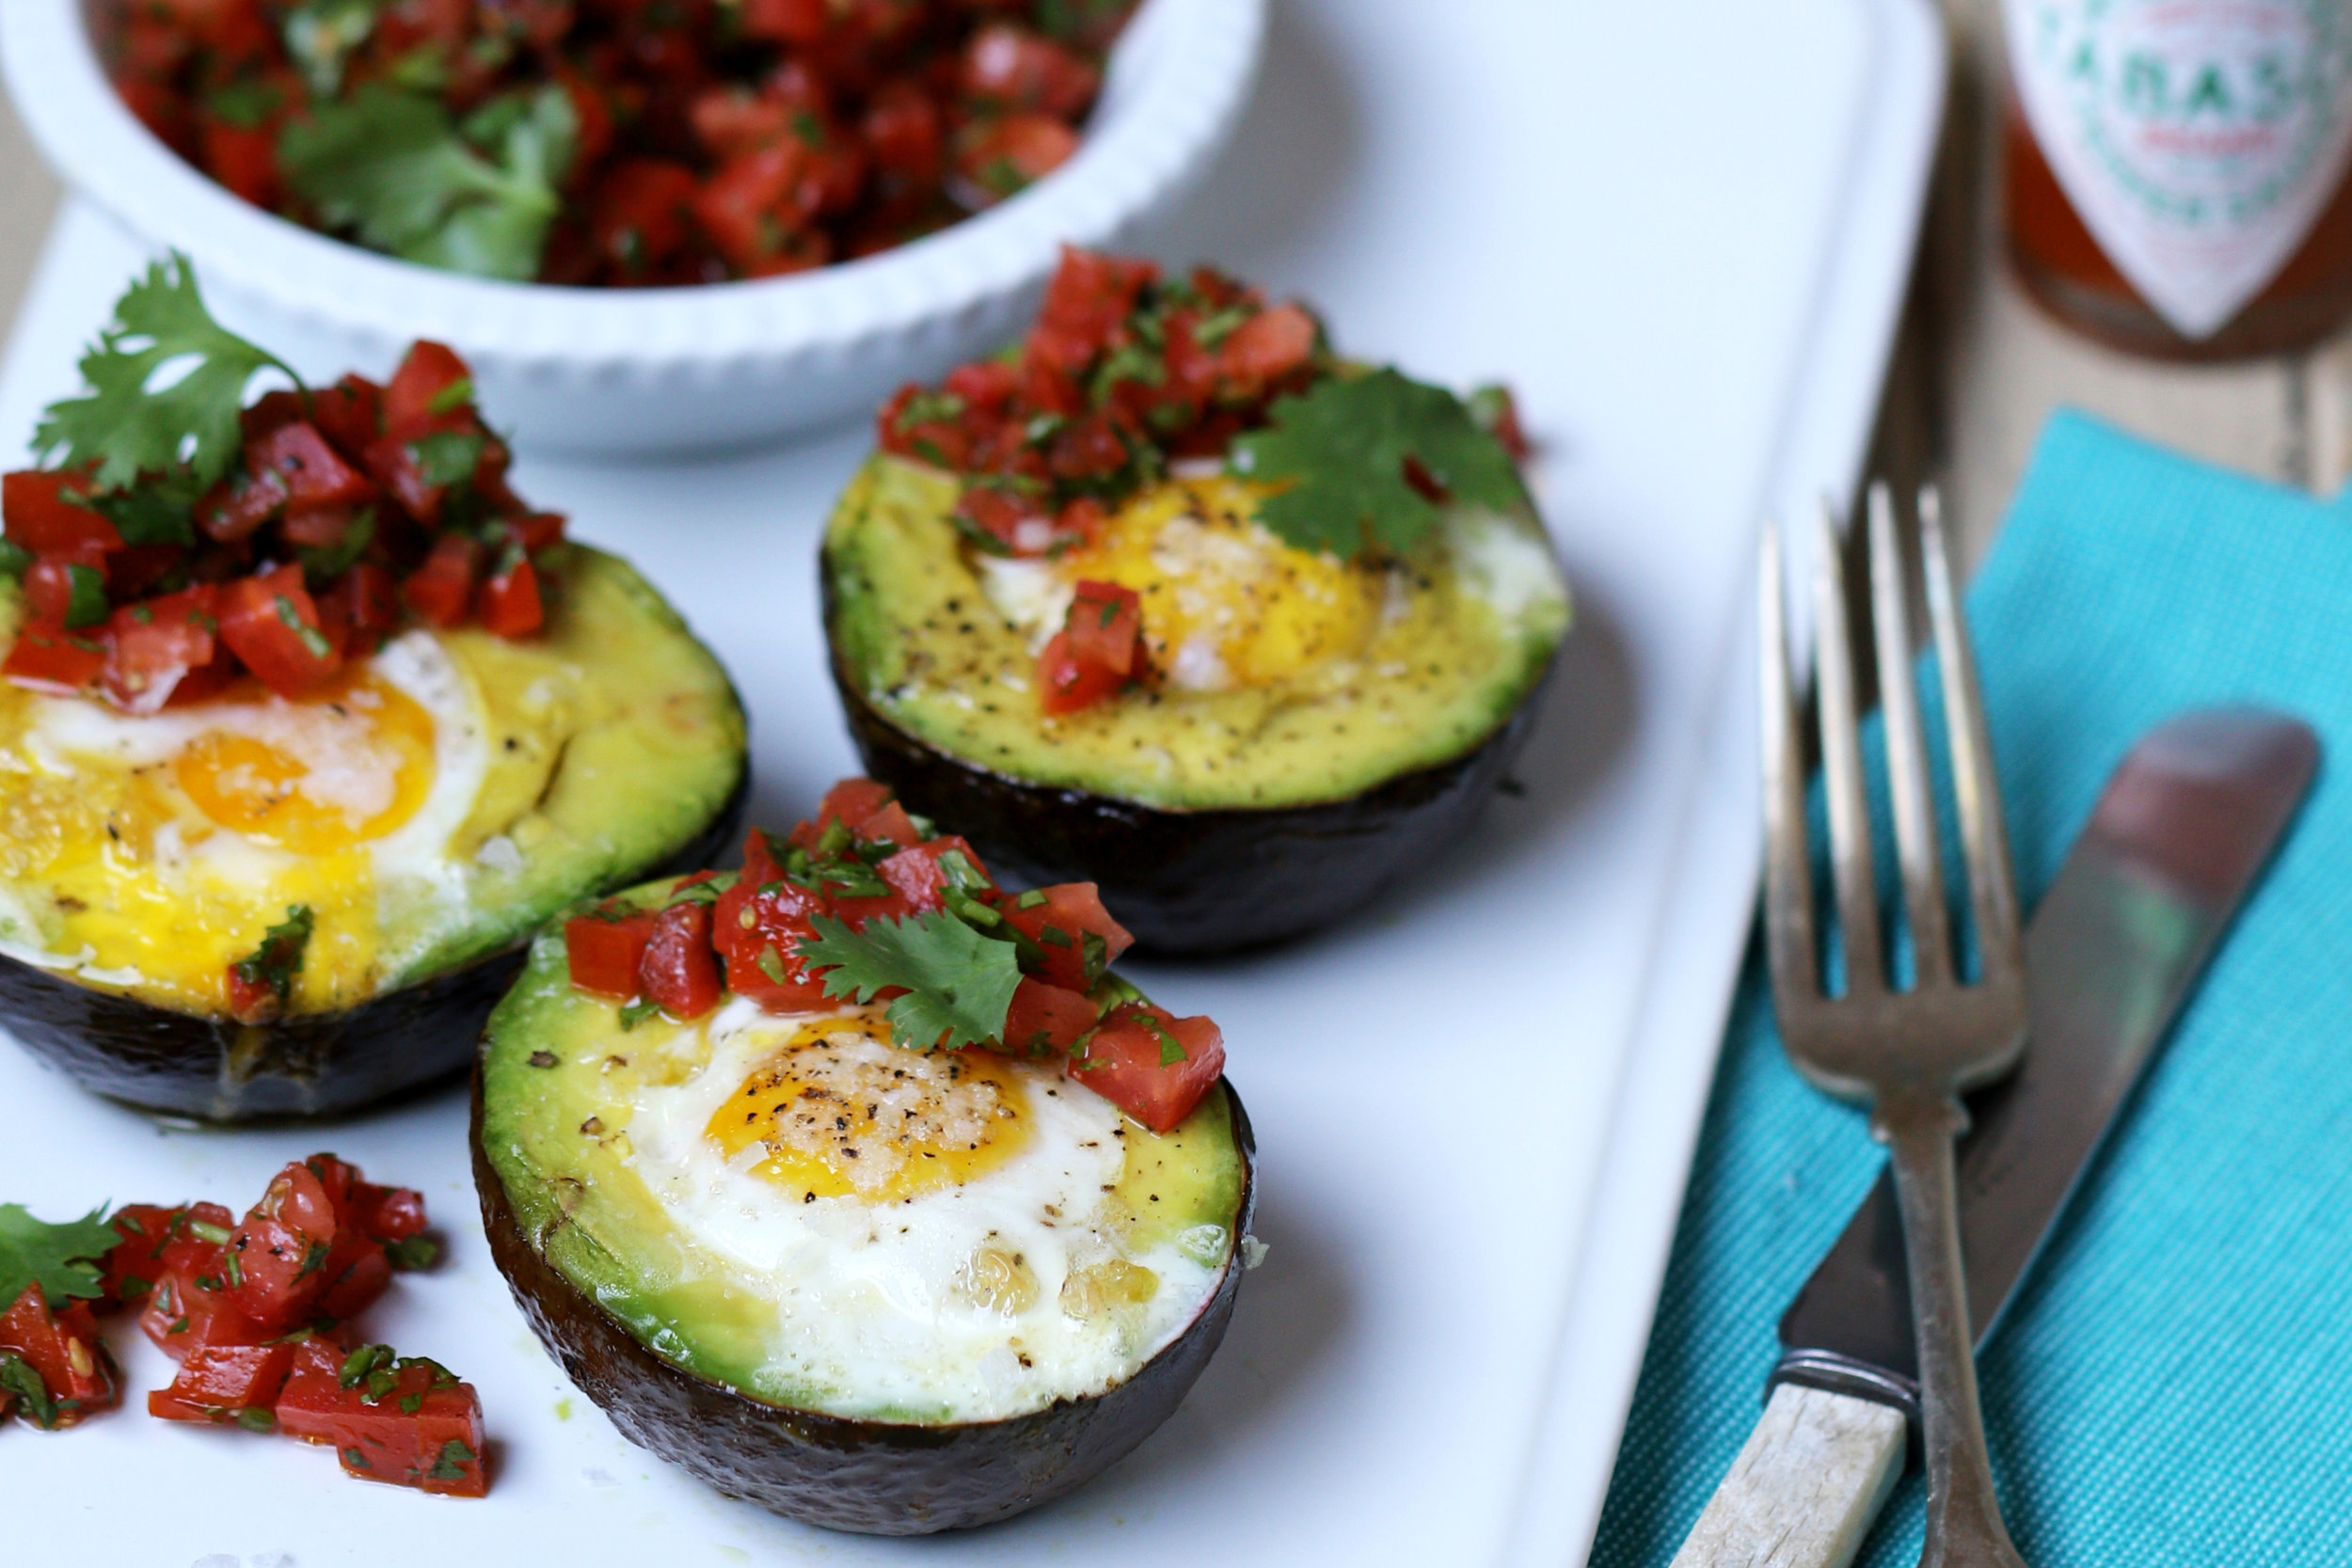 BEST LOW CARB KETO BAKED STUFFED AVOCADO BREAKFAST RECIPE - CHEF RYAN TURNER.jpg